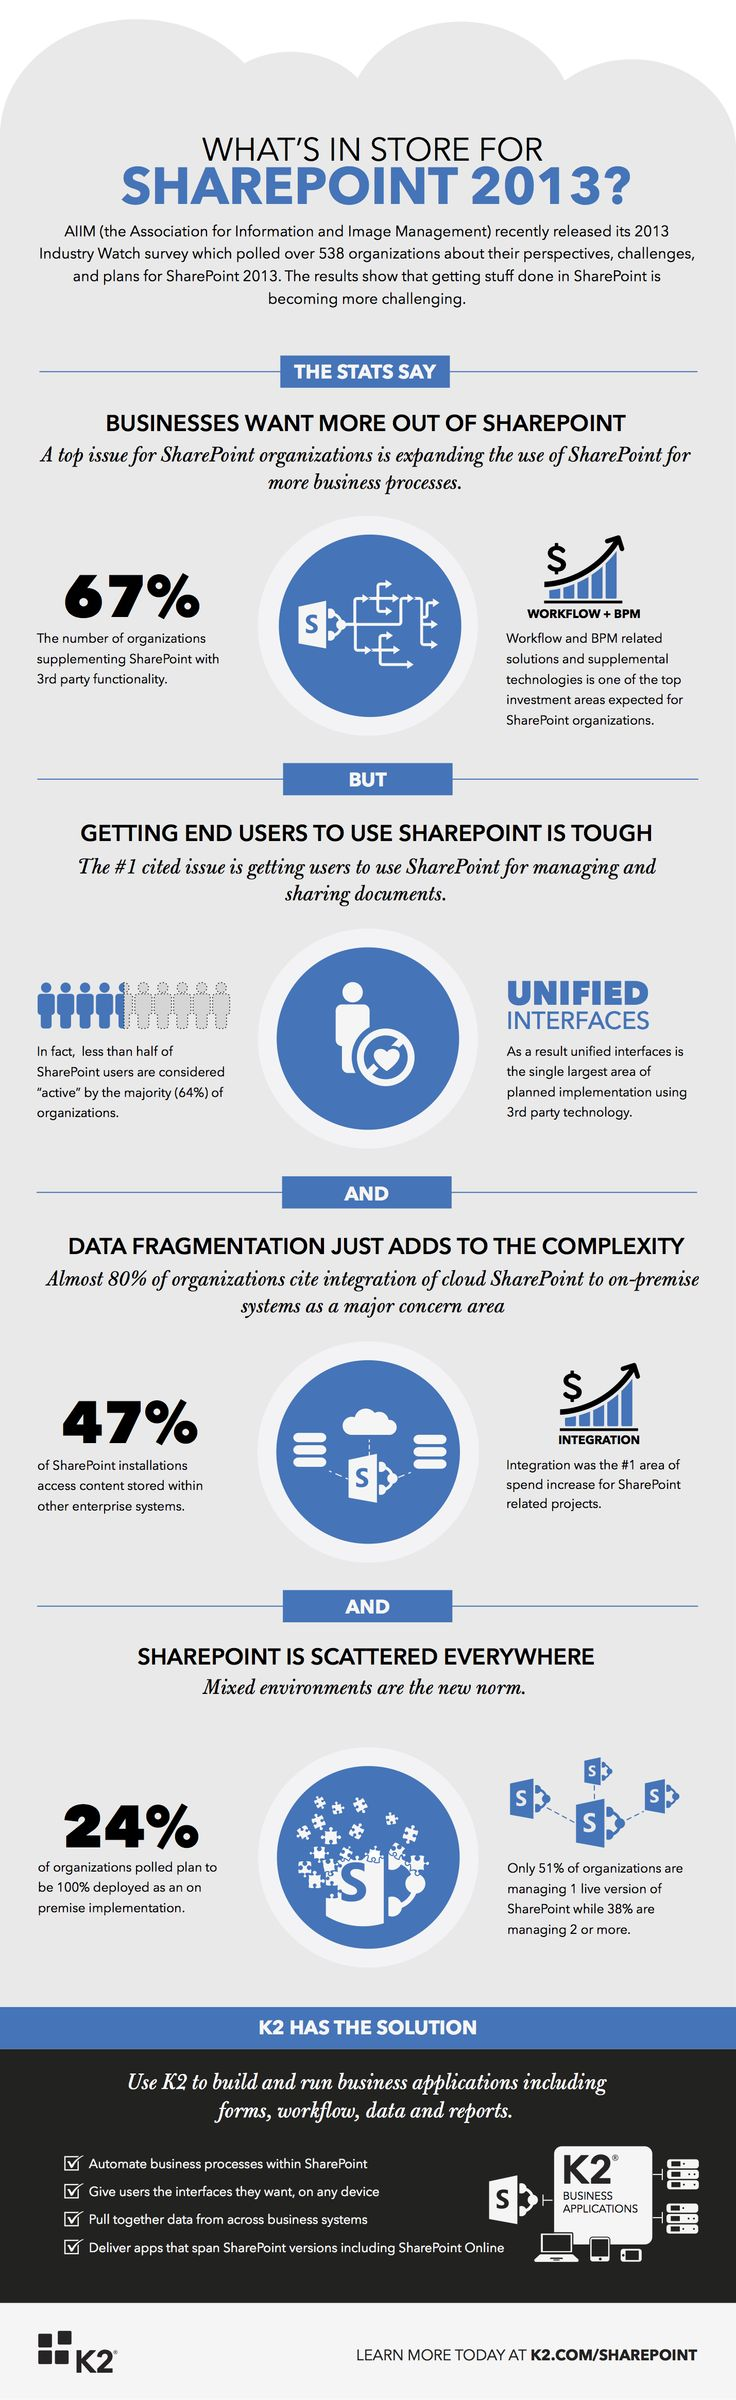 What's in Store for Sharepoint 2013? | AIIM survey results | K2 | infographic :